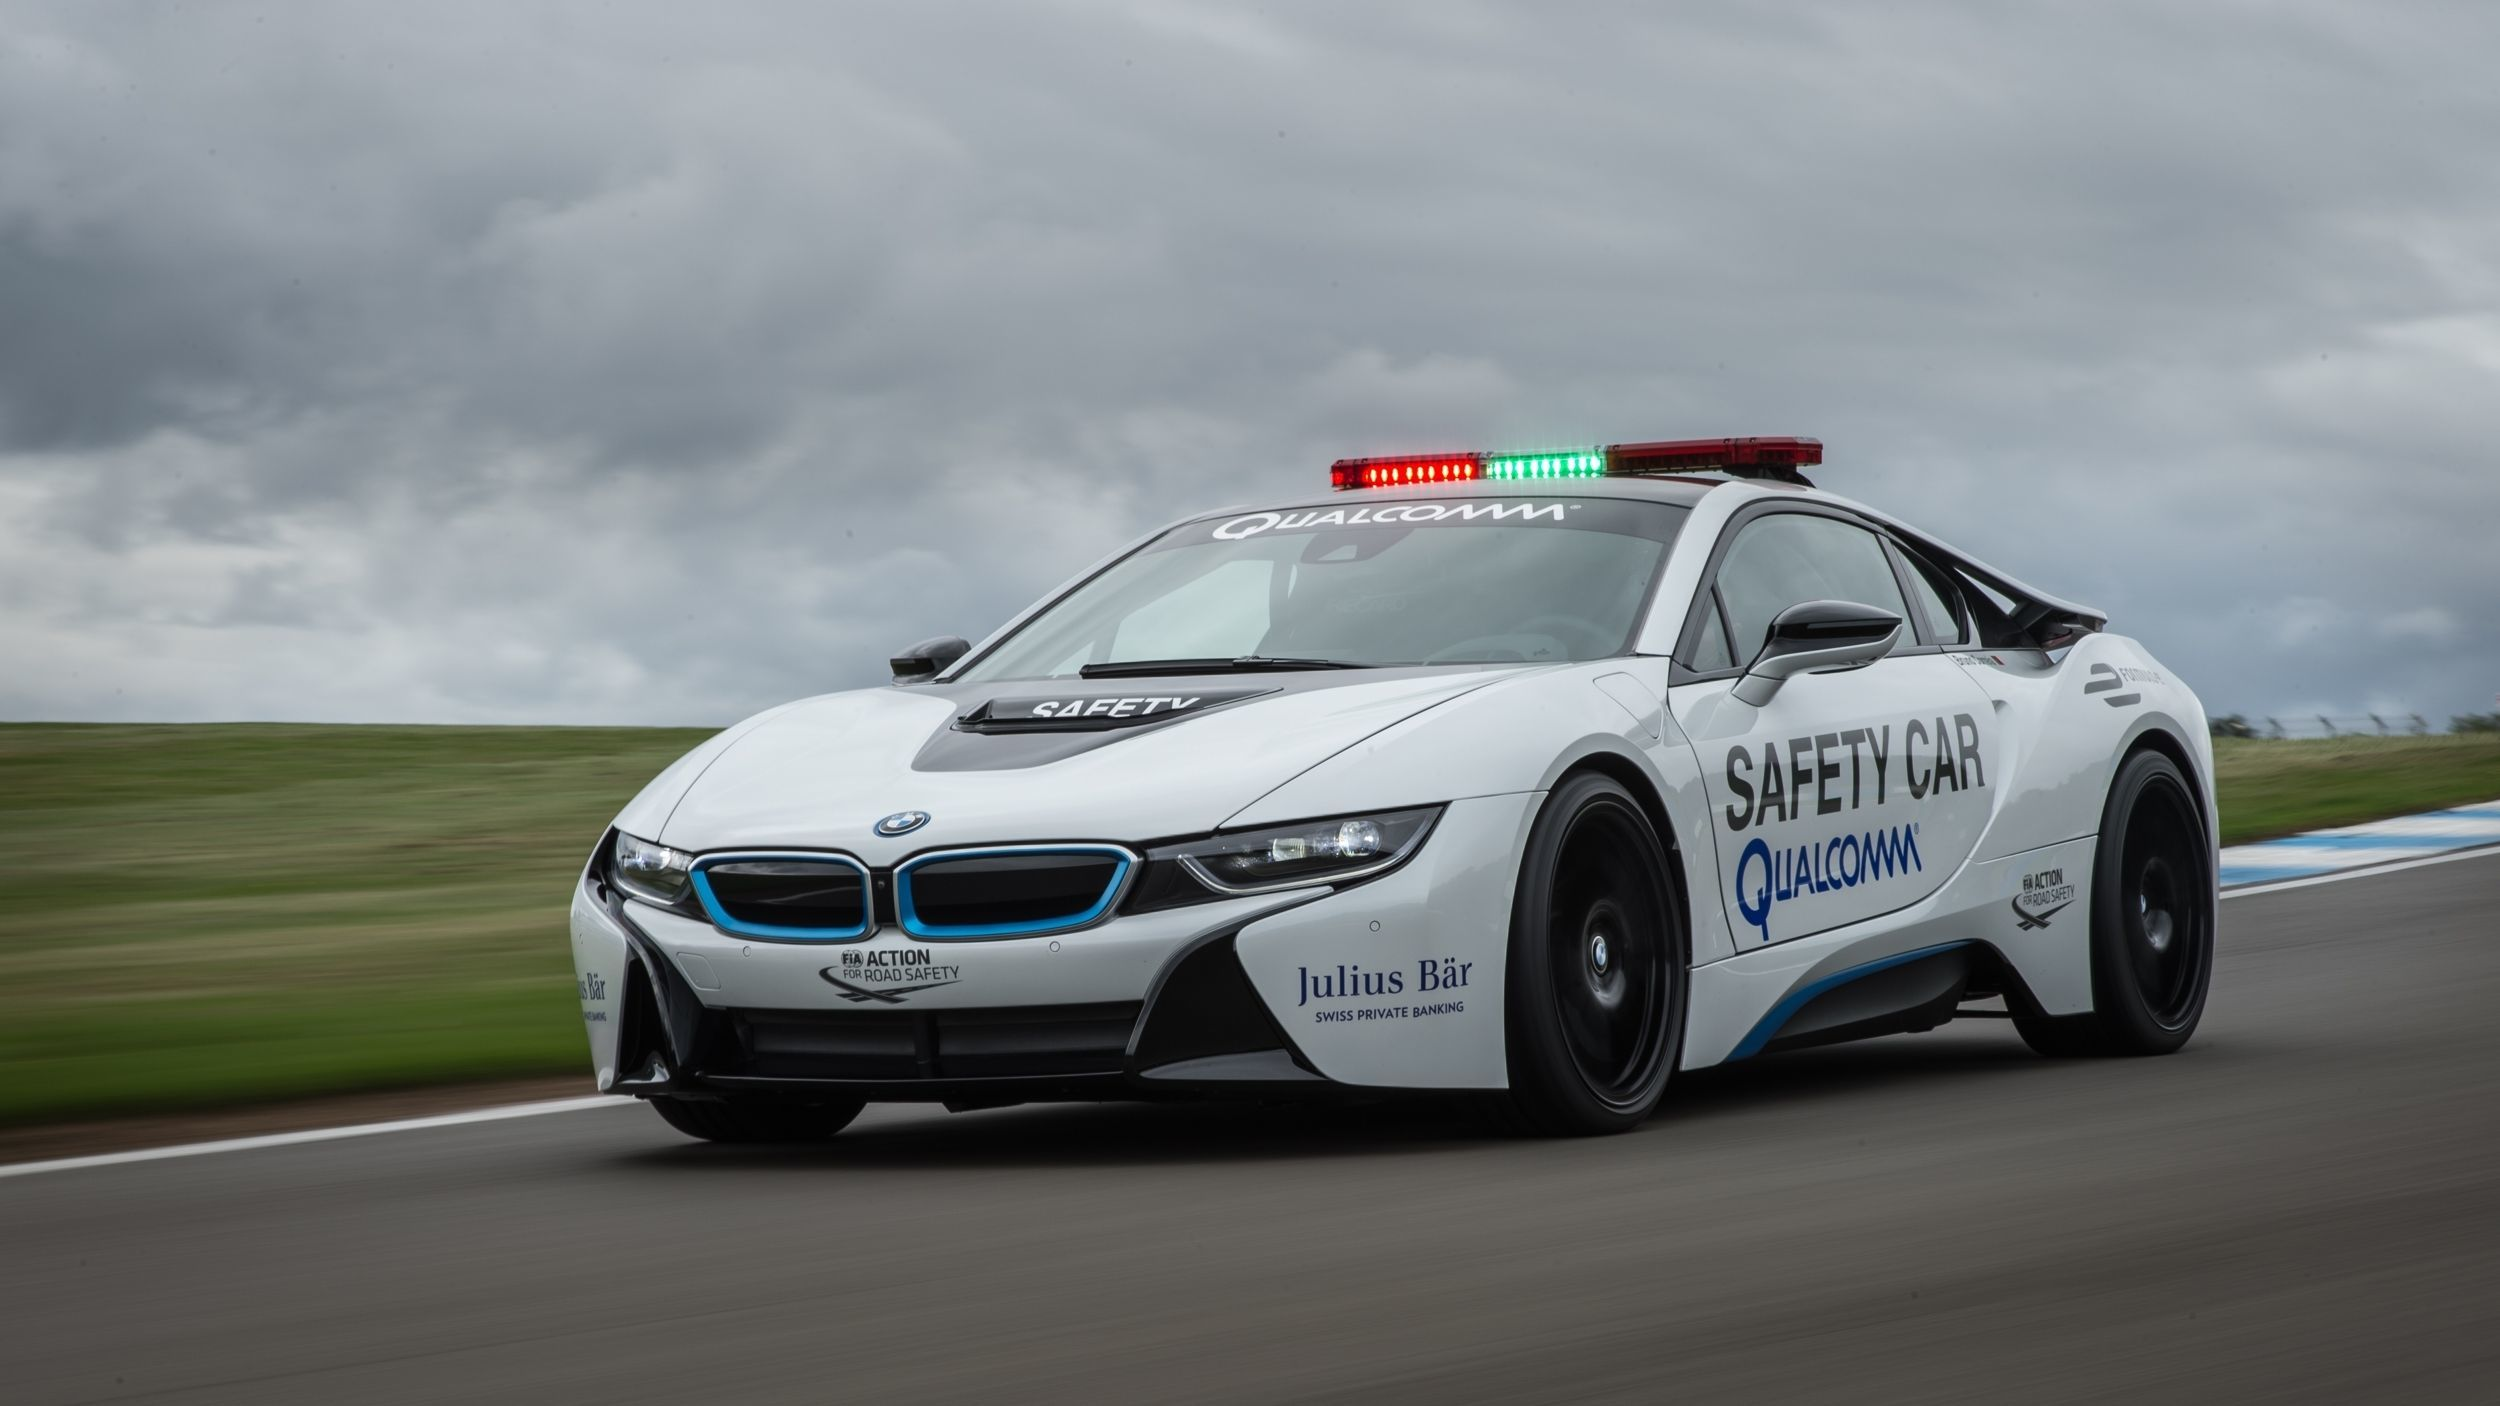 bmw-i8-safety-car-main-image_zoldautok